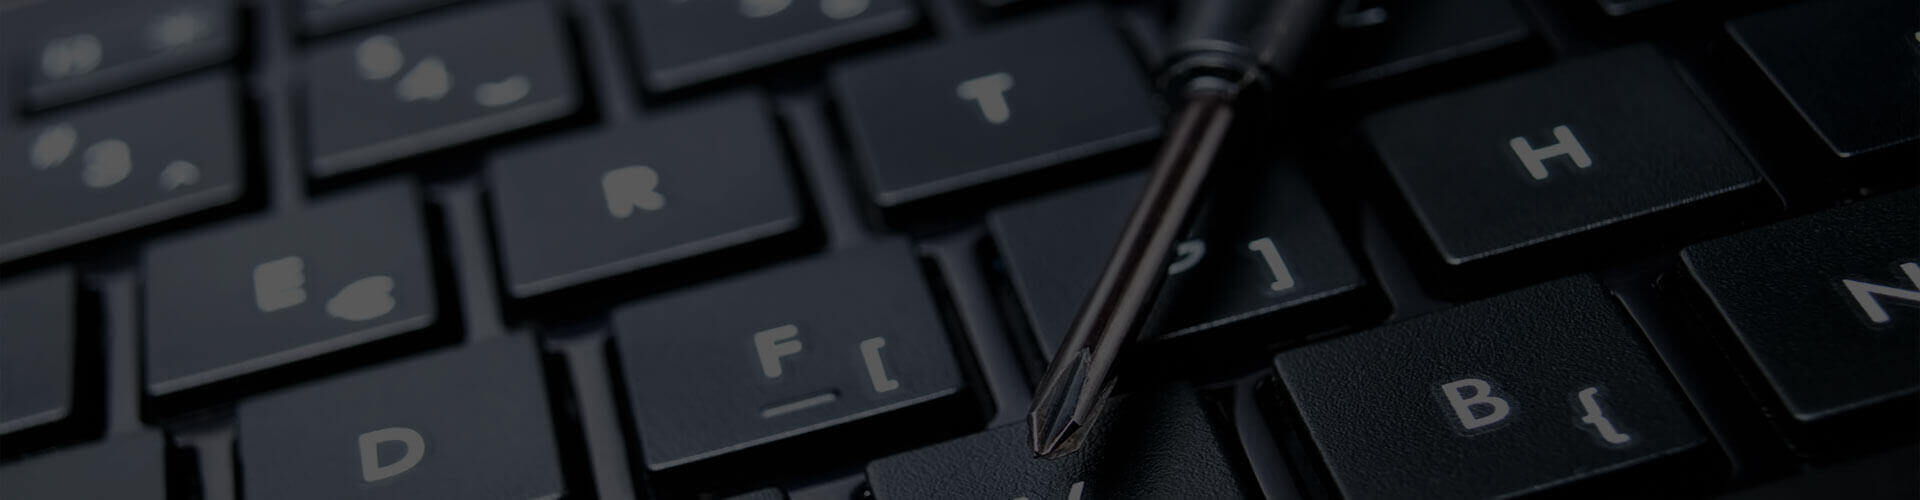 Outsourcing Technical Support Services India, Banking